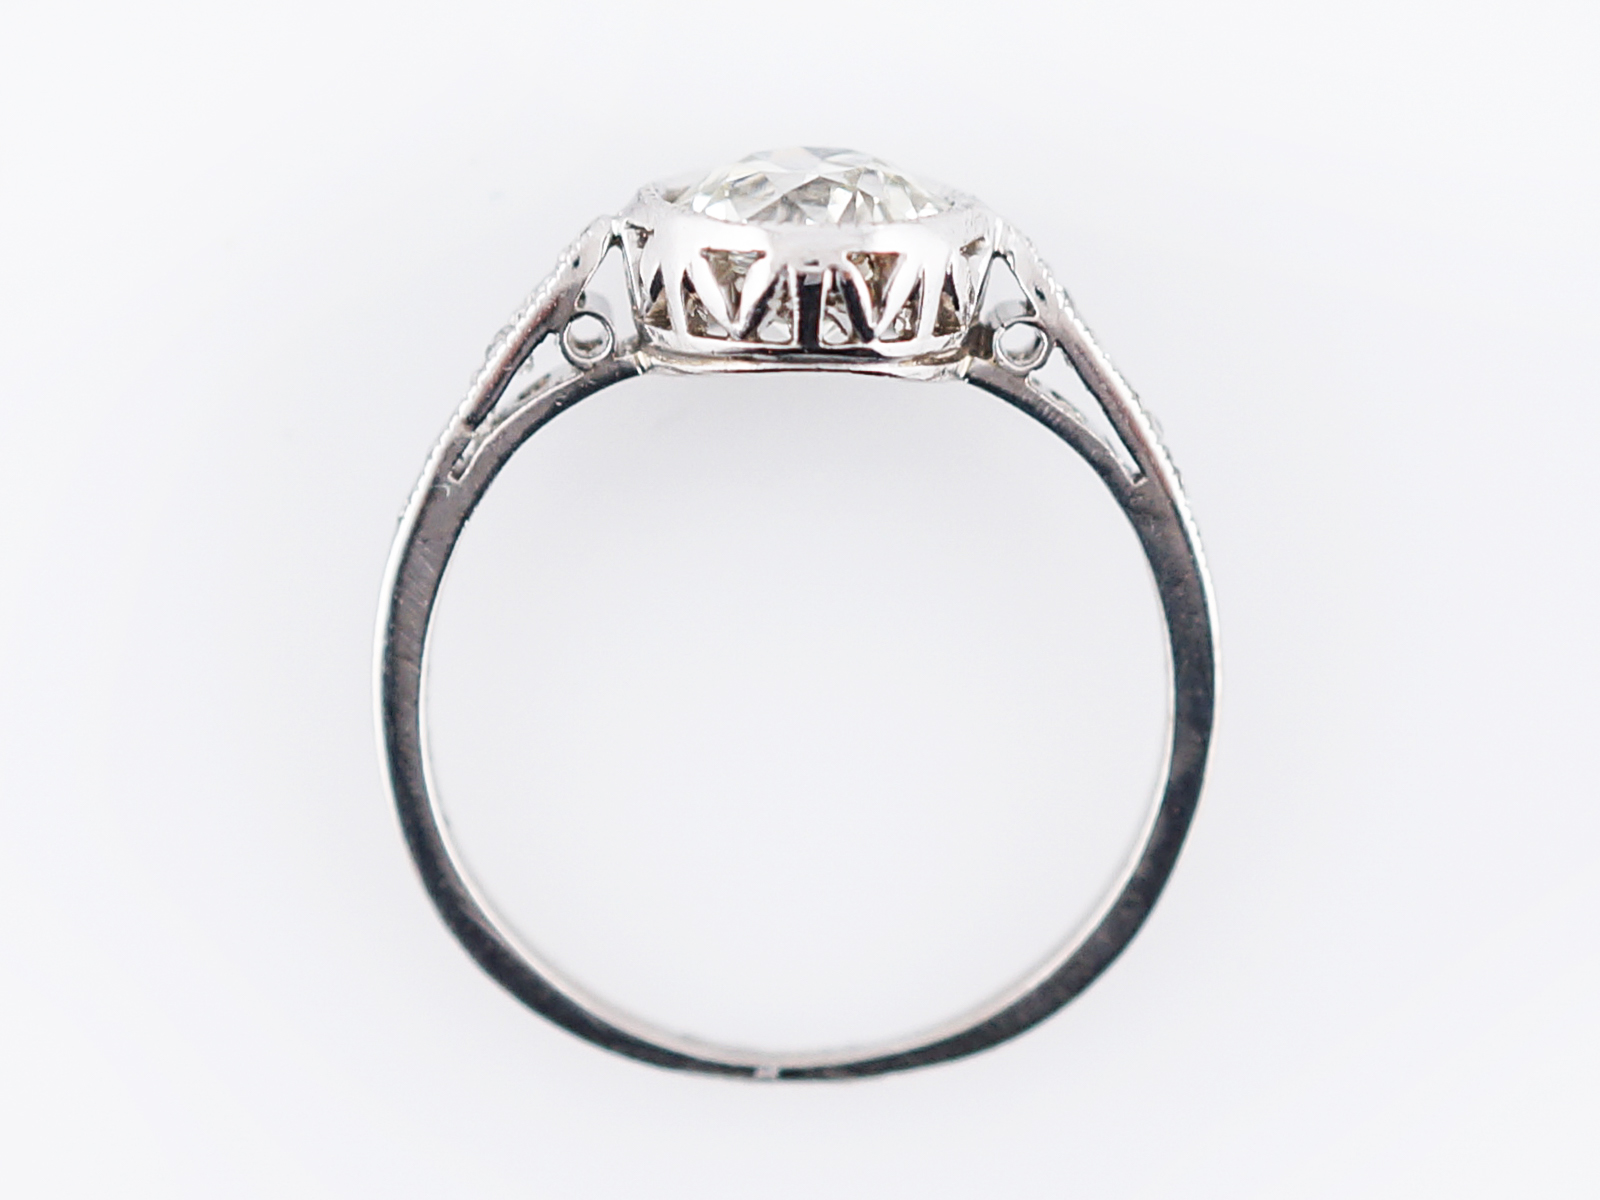 low ring wedding thin lord profile david titanium parker gts shop coconut rings